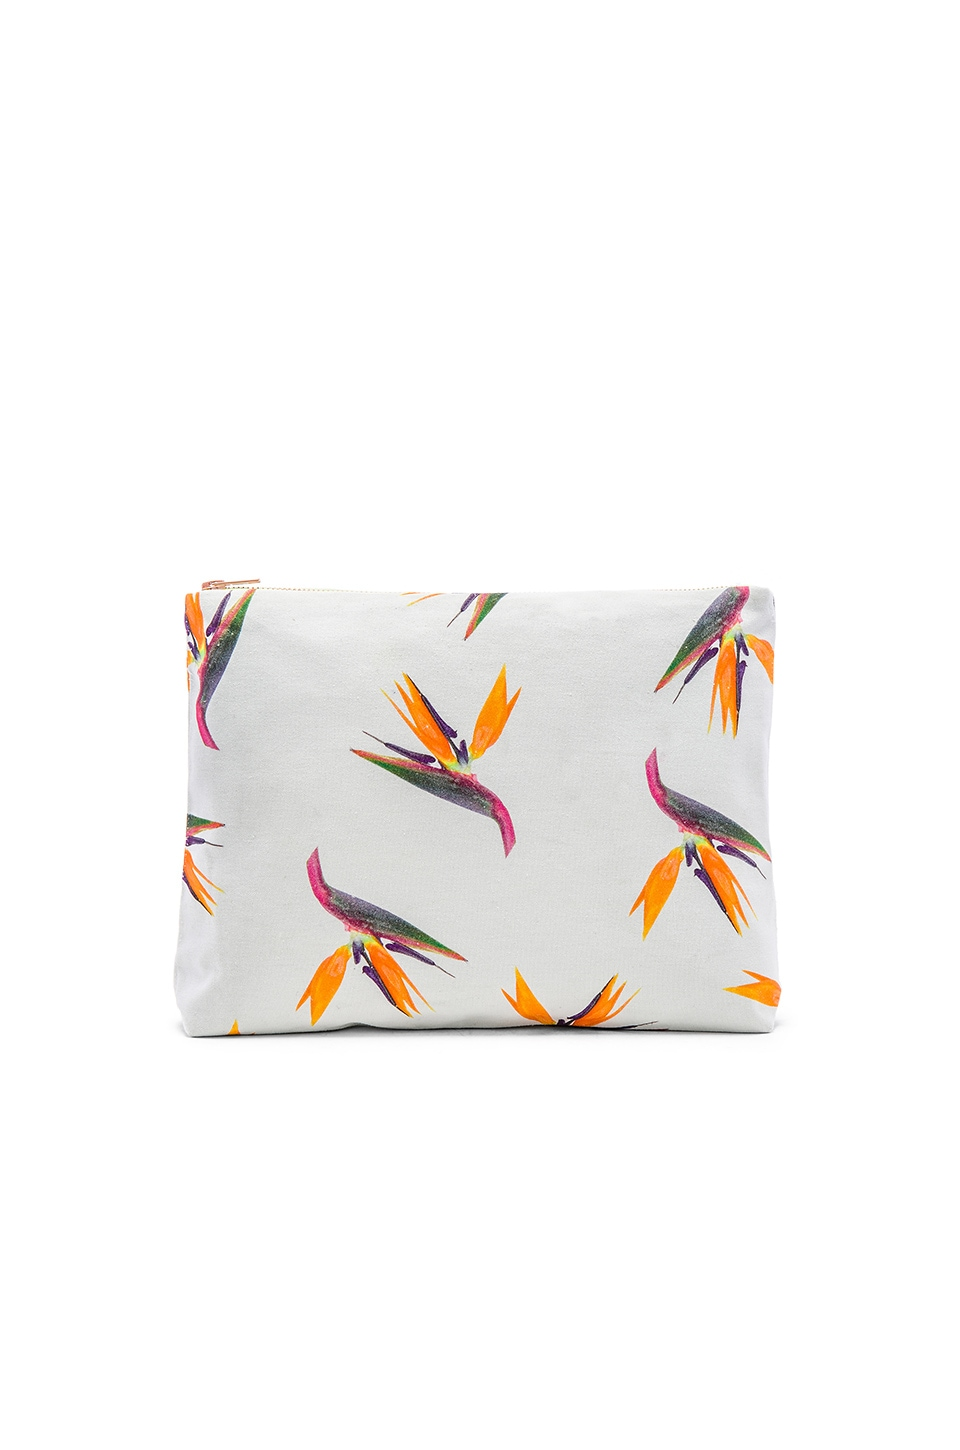 Samudra Birds of Paradise Pouch in Multi